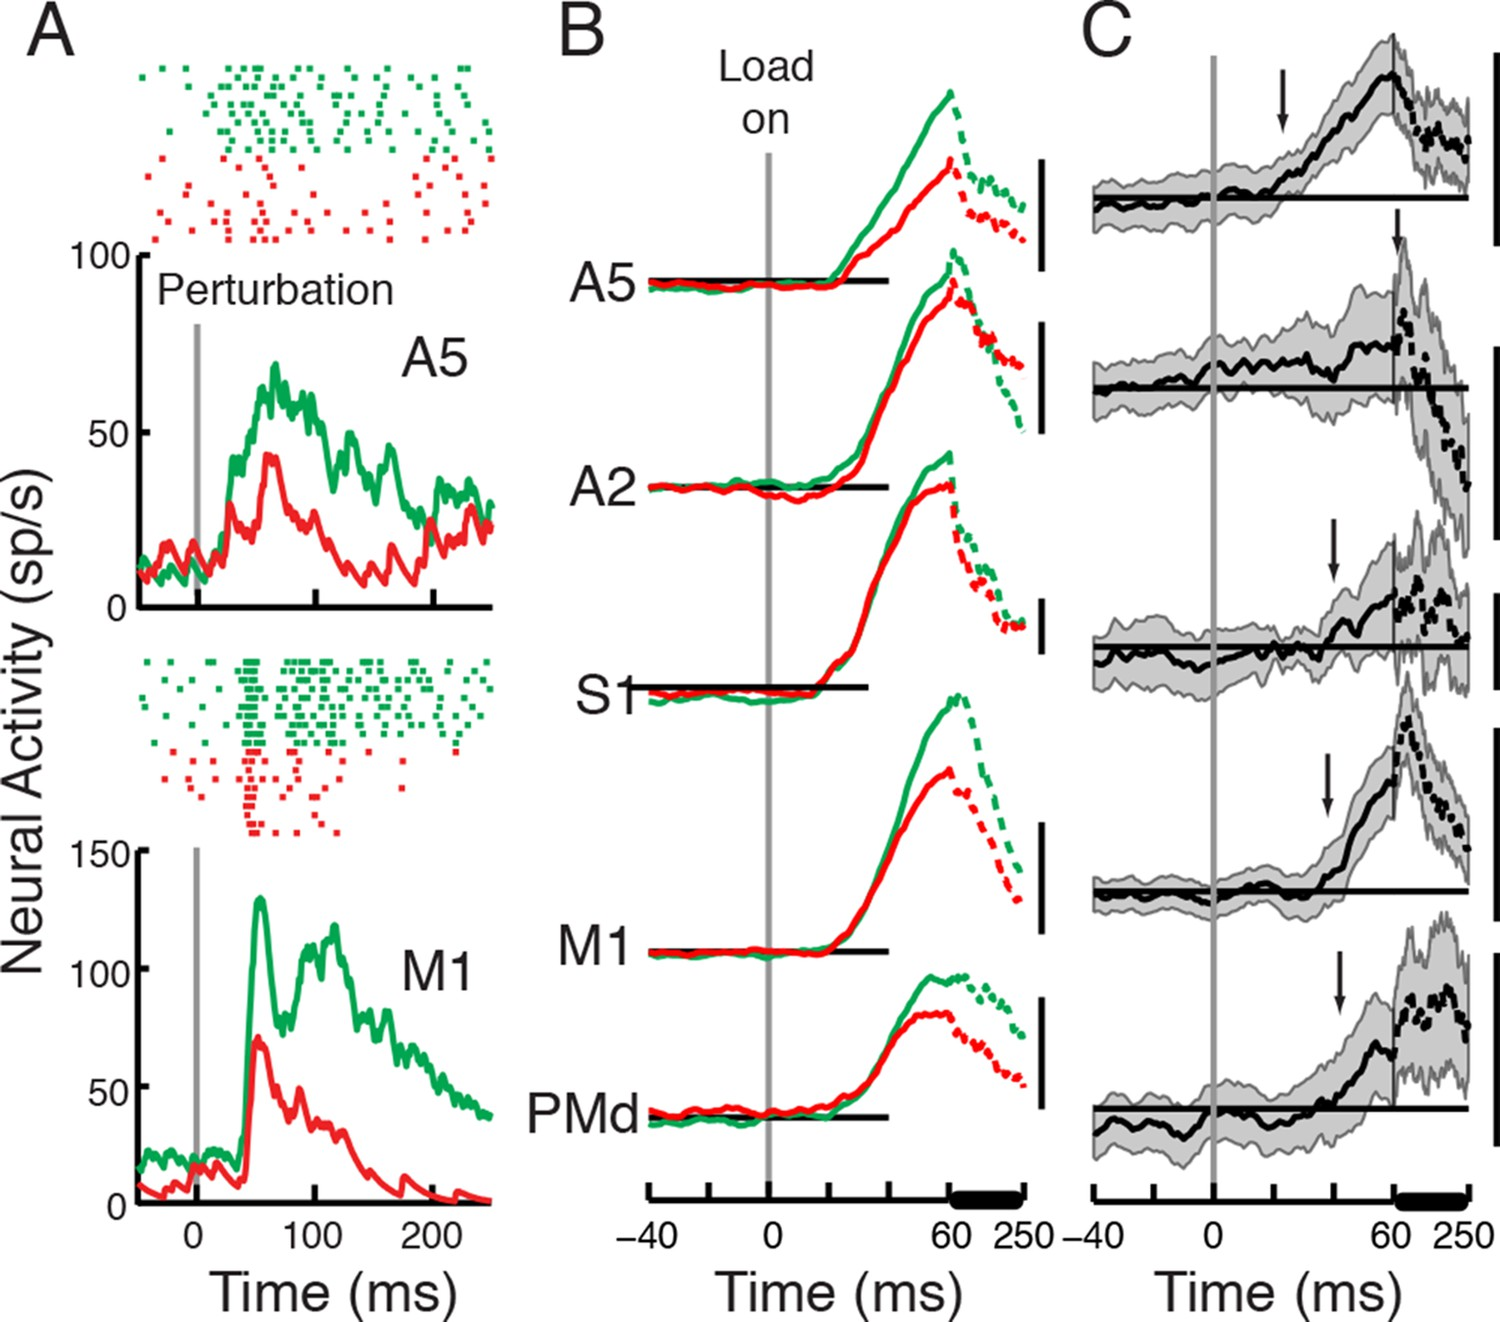 Distributed Task Specific Processing Of Somatosensory Feedback For Dc Wiring Diagram Atlas Point Motor Perturbation Responses Compared Across The Posture And Movie Tasks